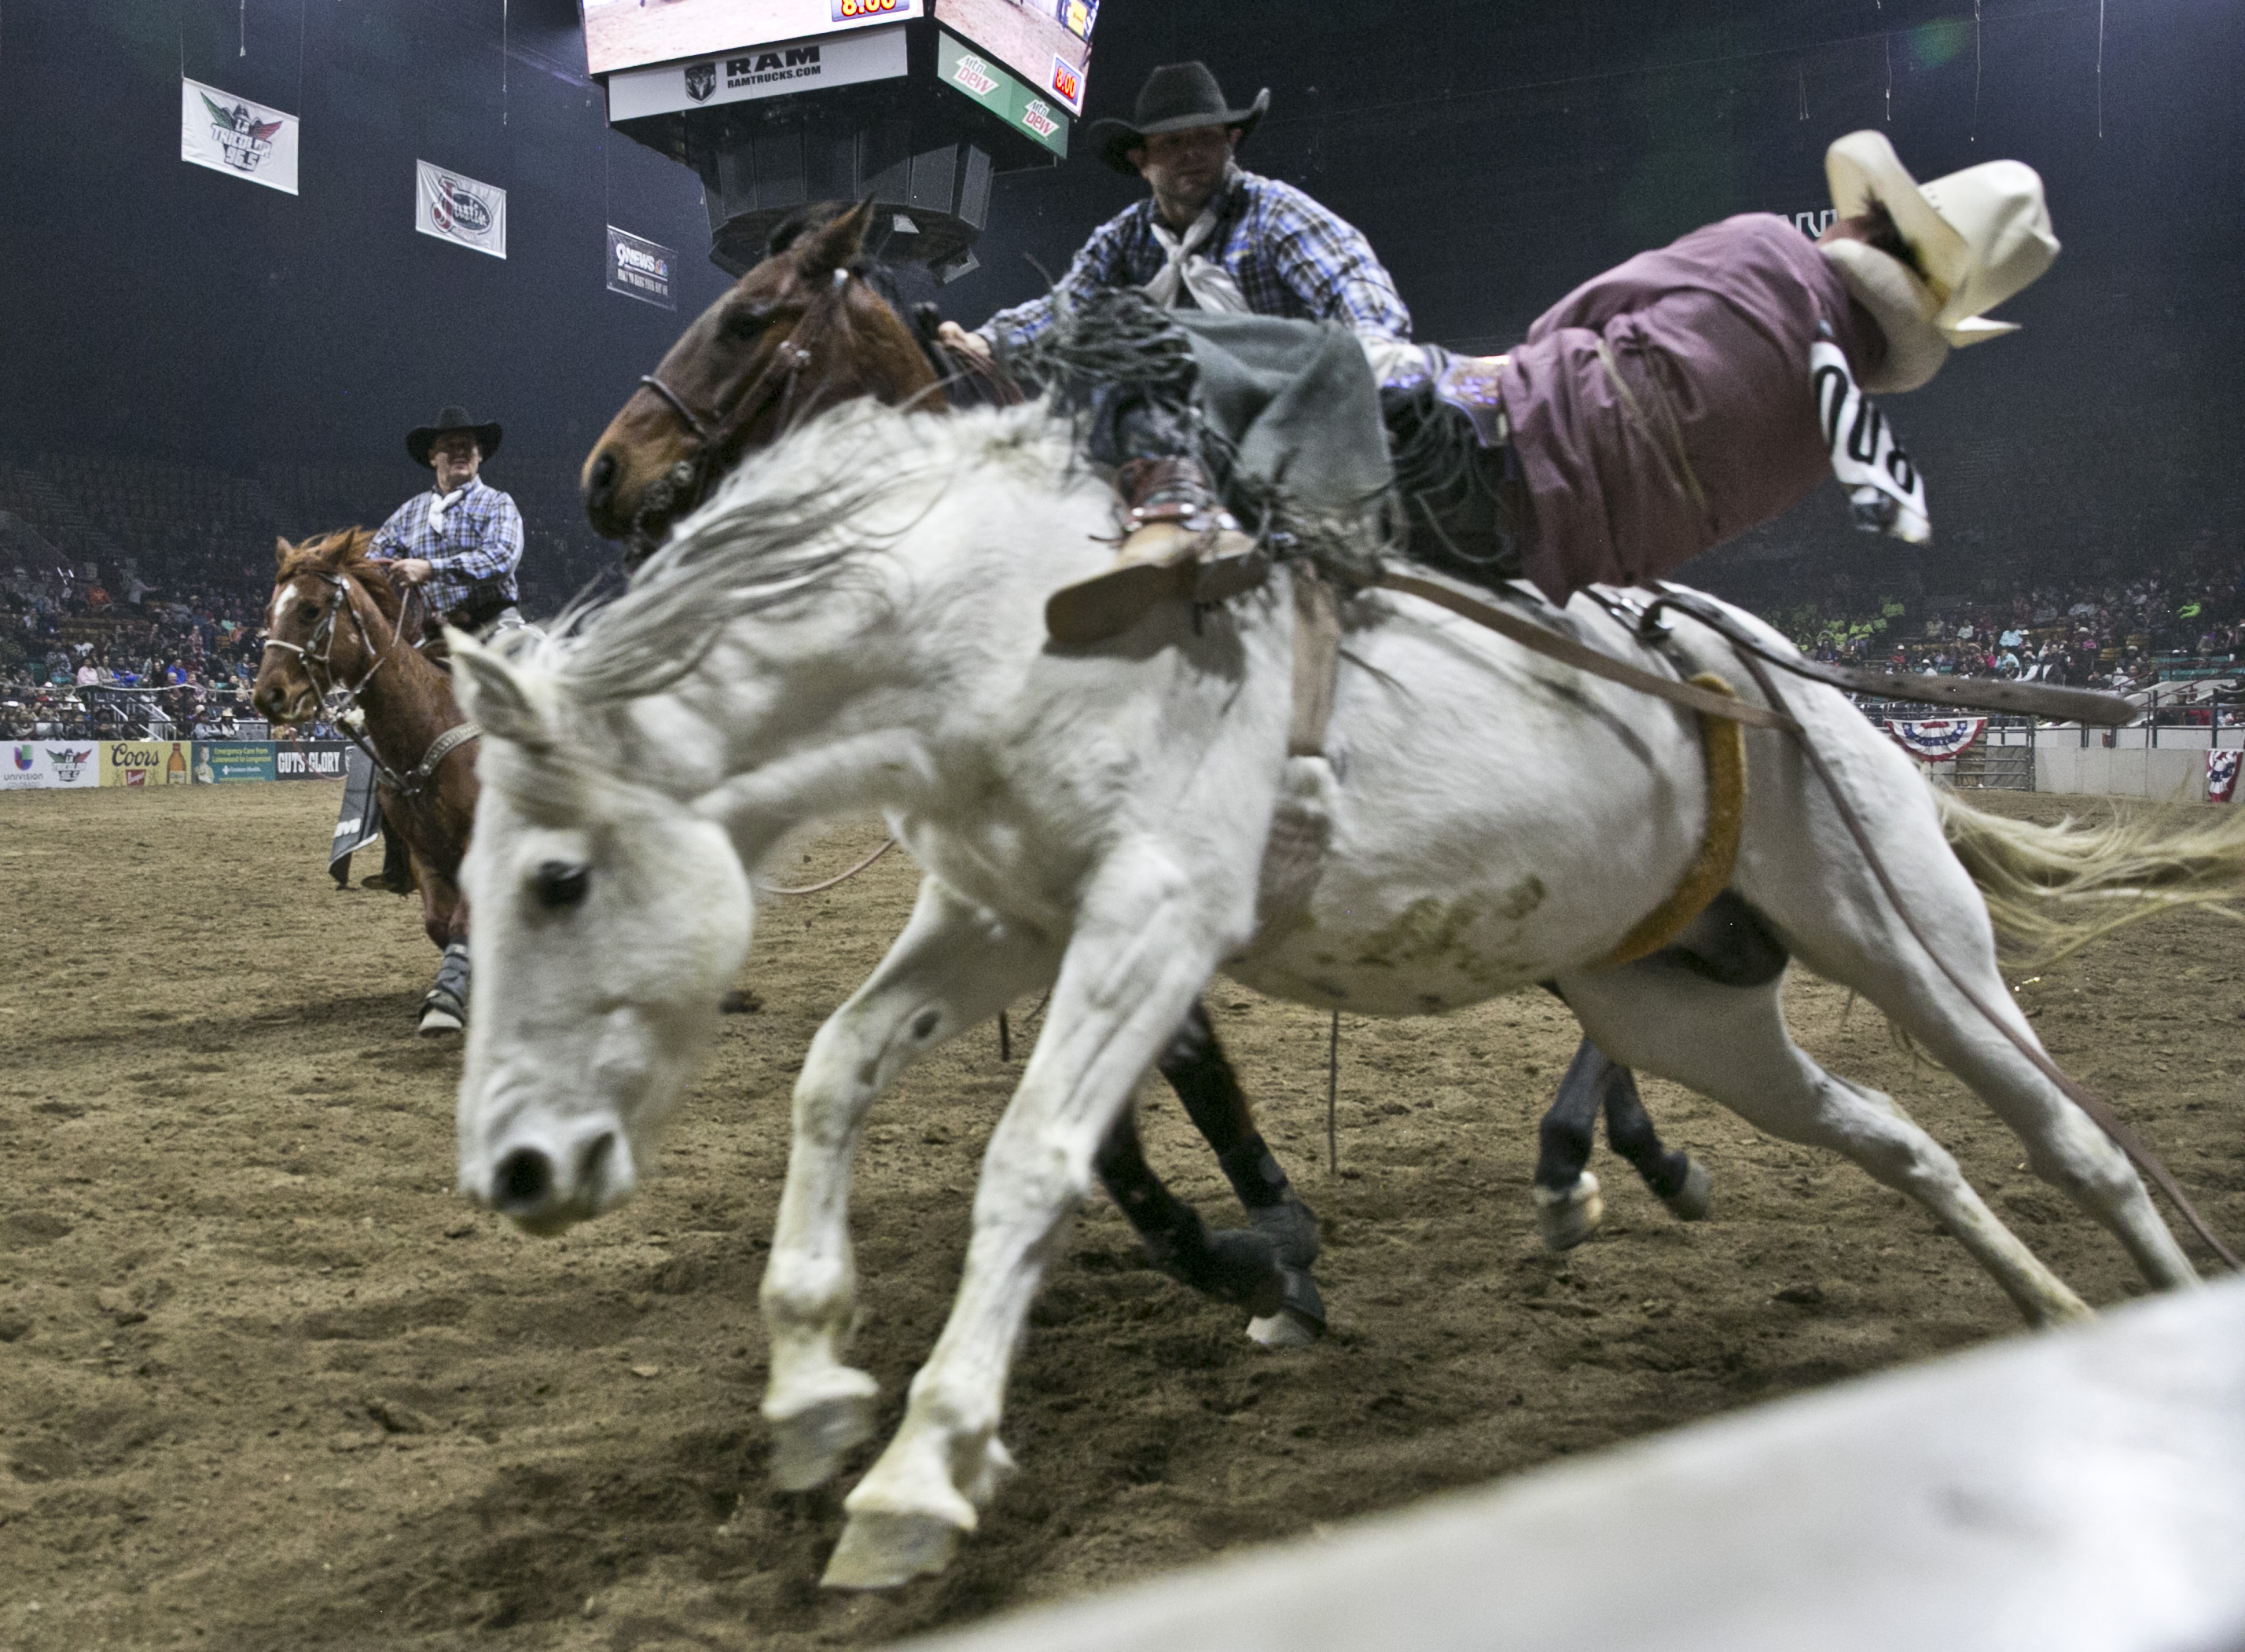 Photo: MLK Rodeo 1 | Falling off